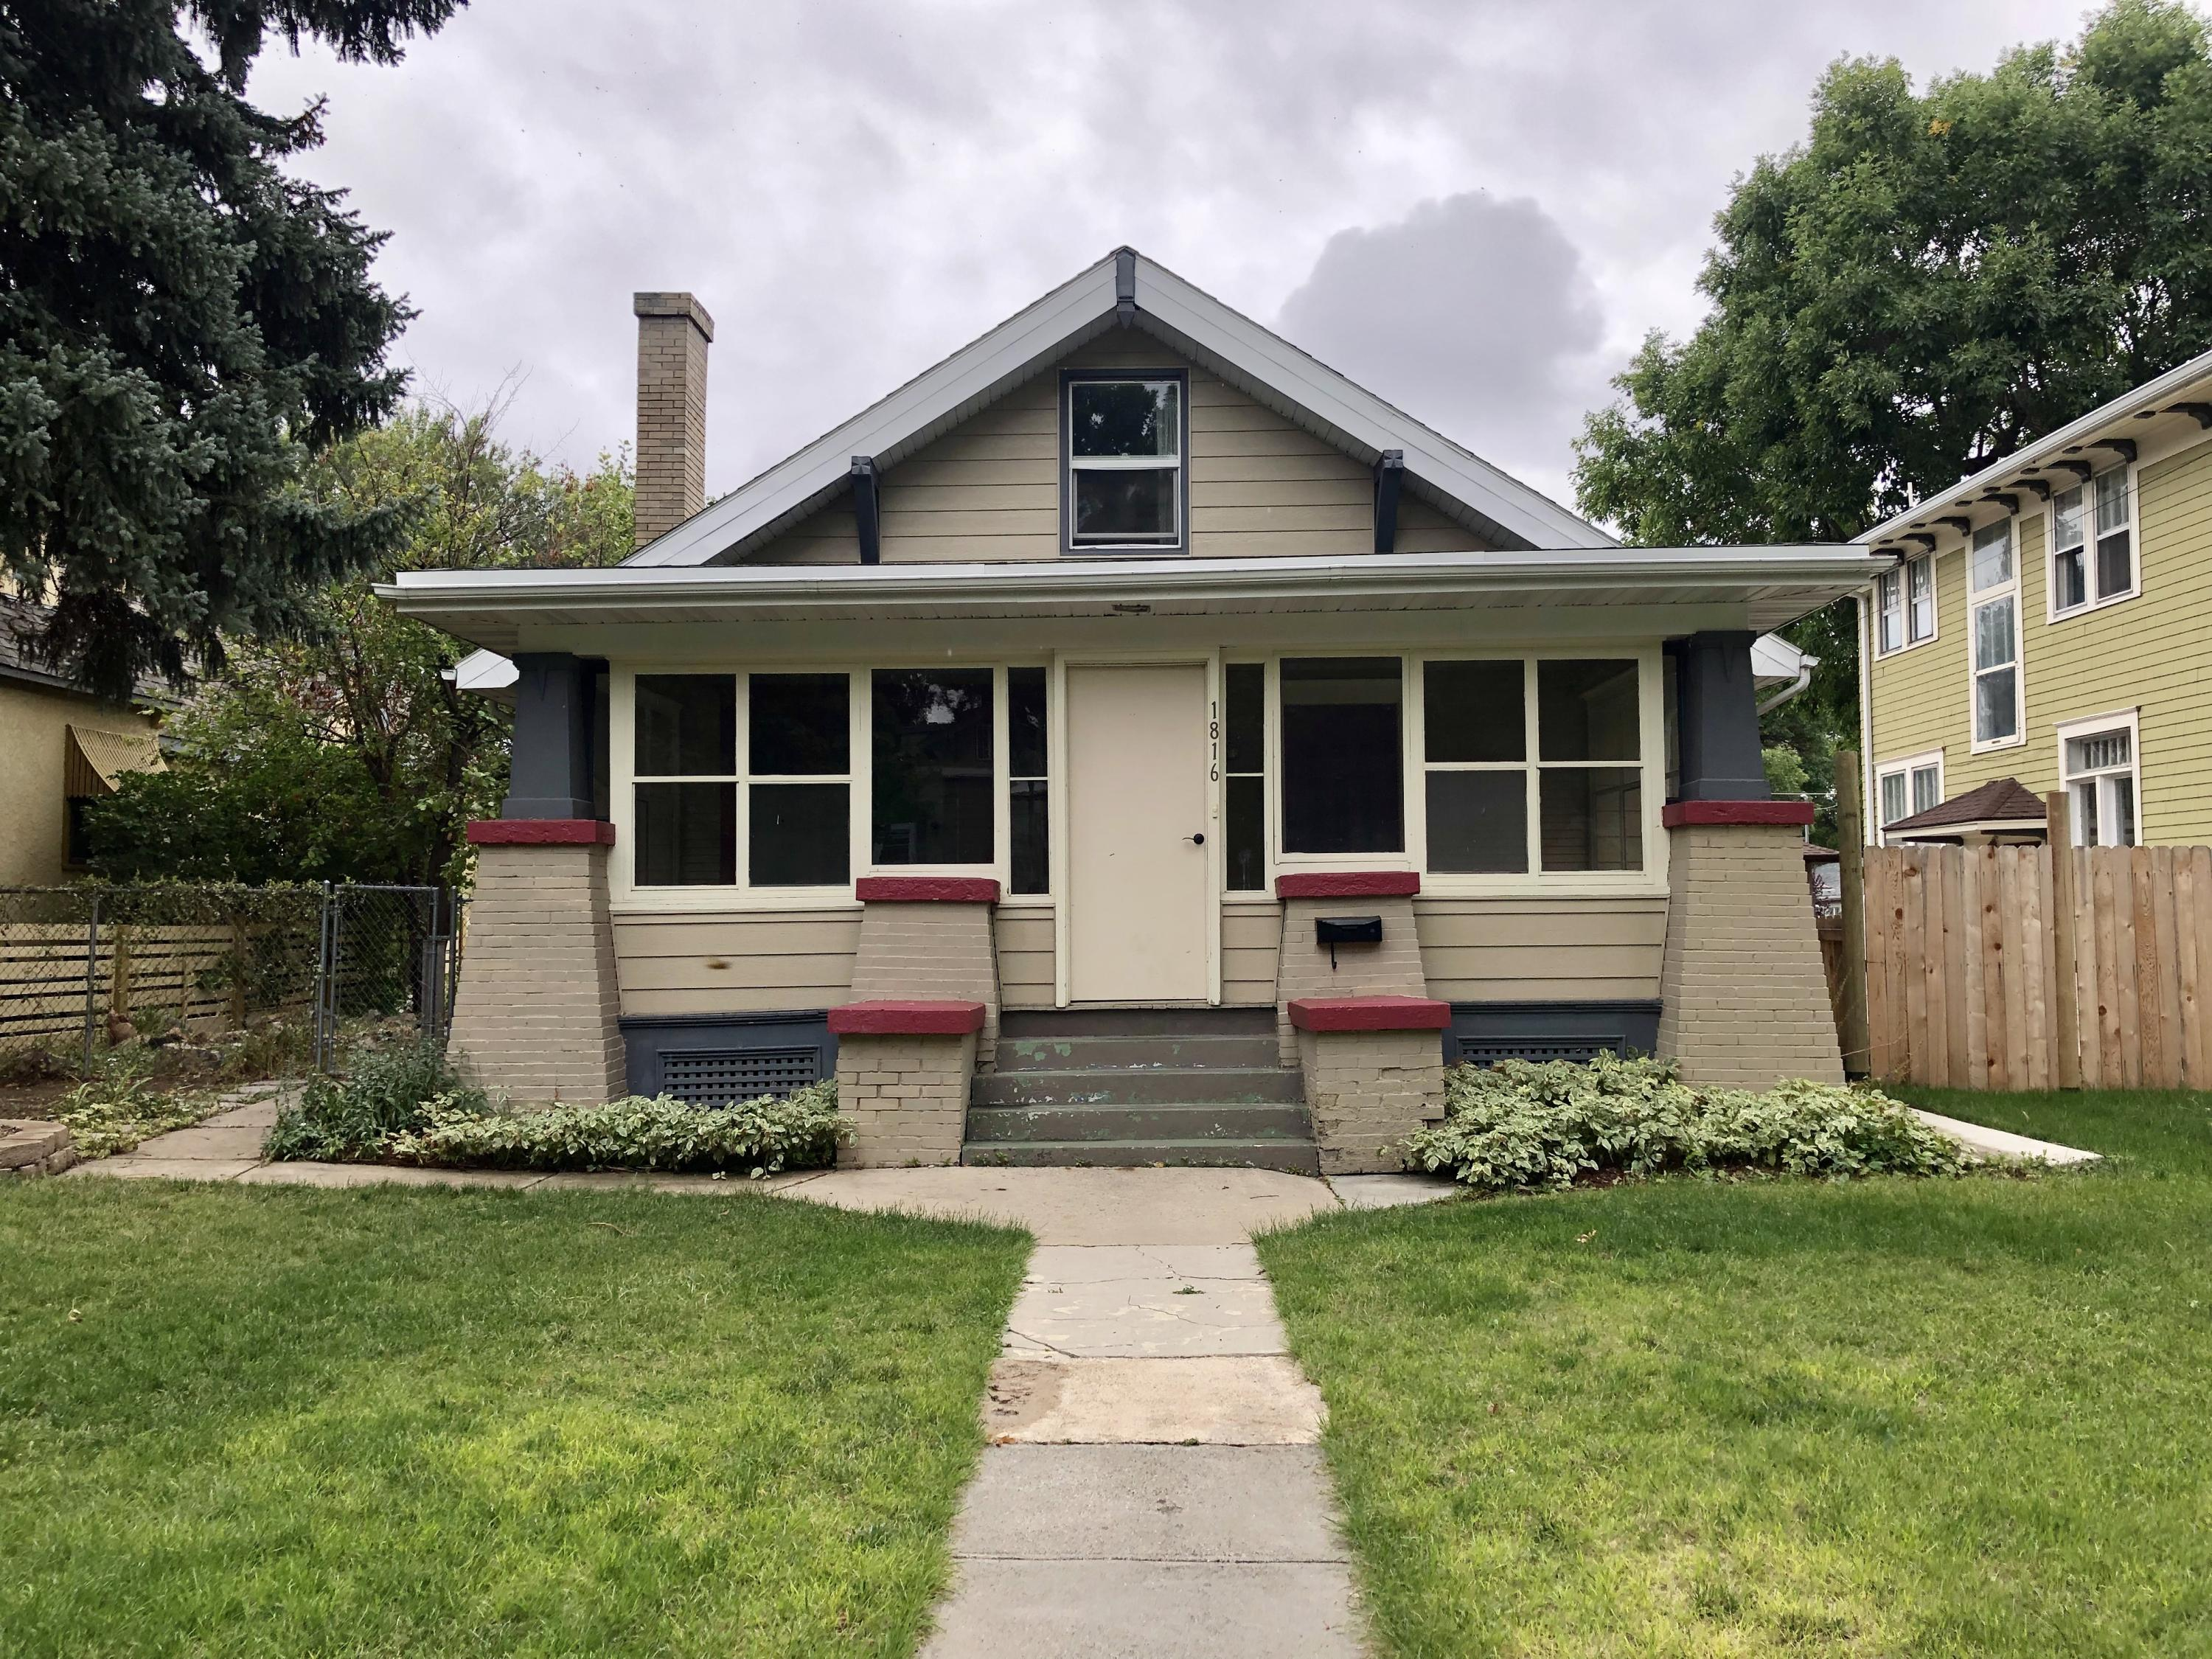 1816 3rd Ave N, Great Falls, MT, 59401